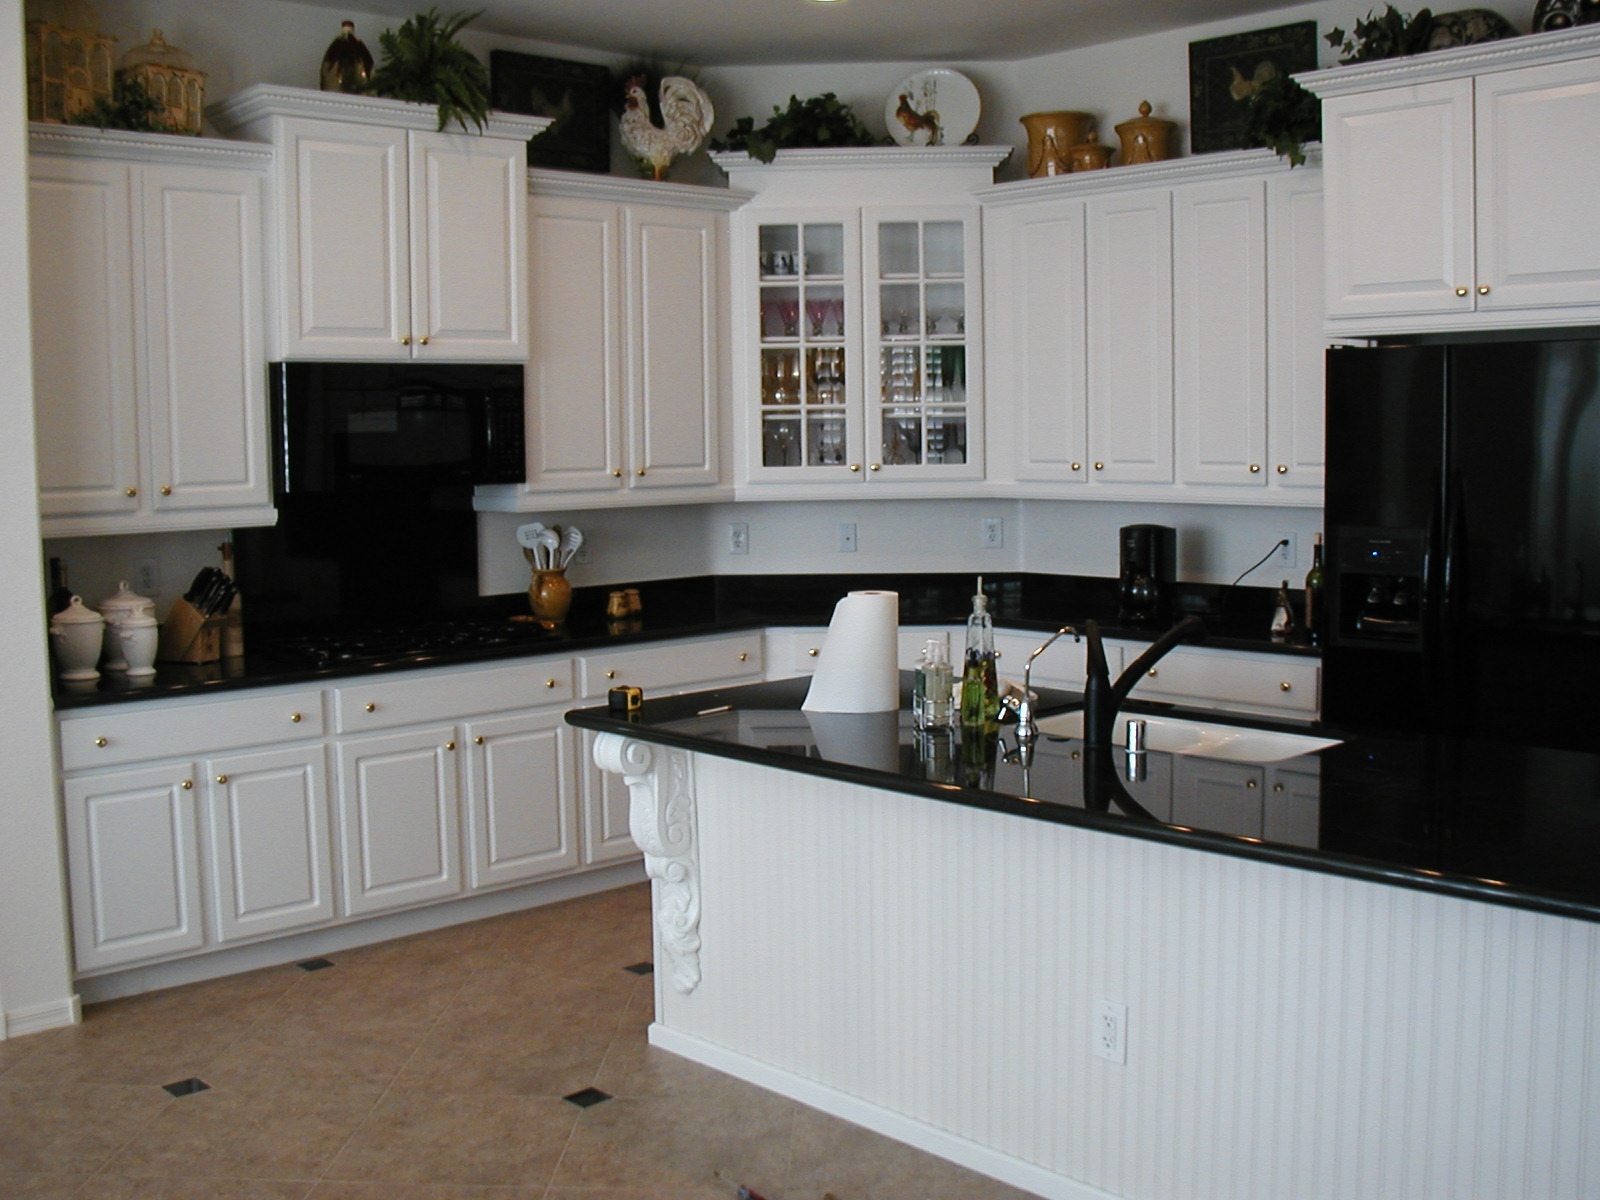 kitchen-white-cabinets-dark-countertops-photo-10